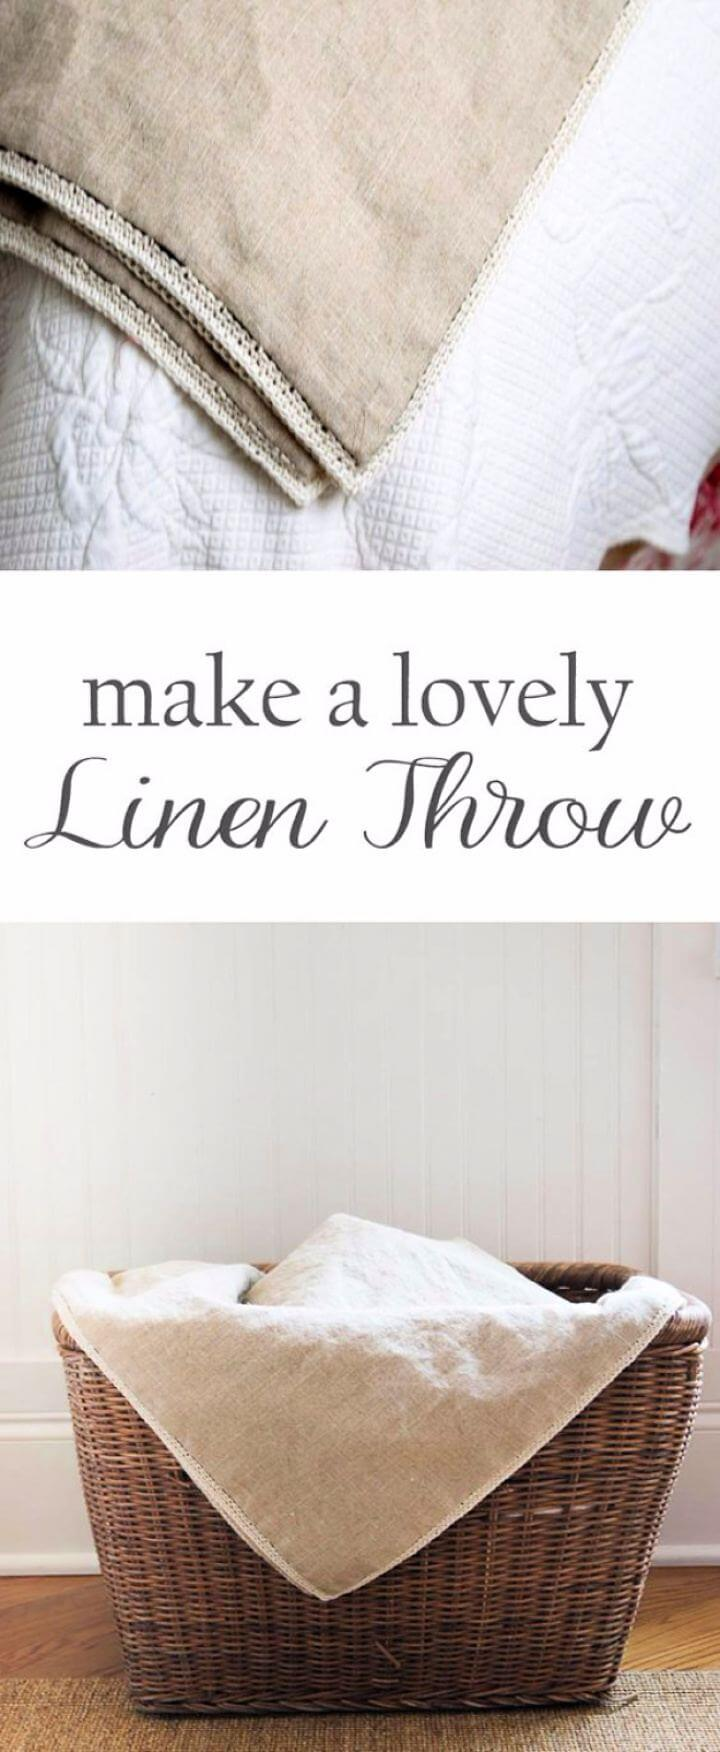 lovely blankets, diy projects, diy ideas, diy home decor, do it yourself